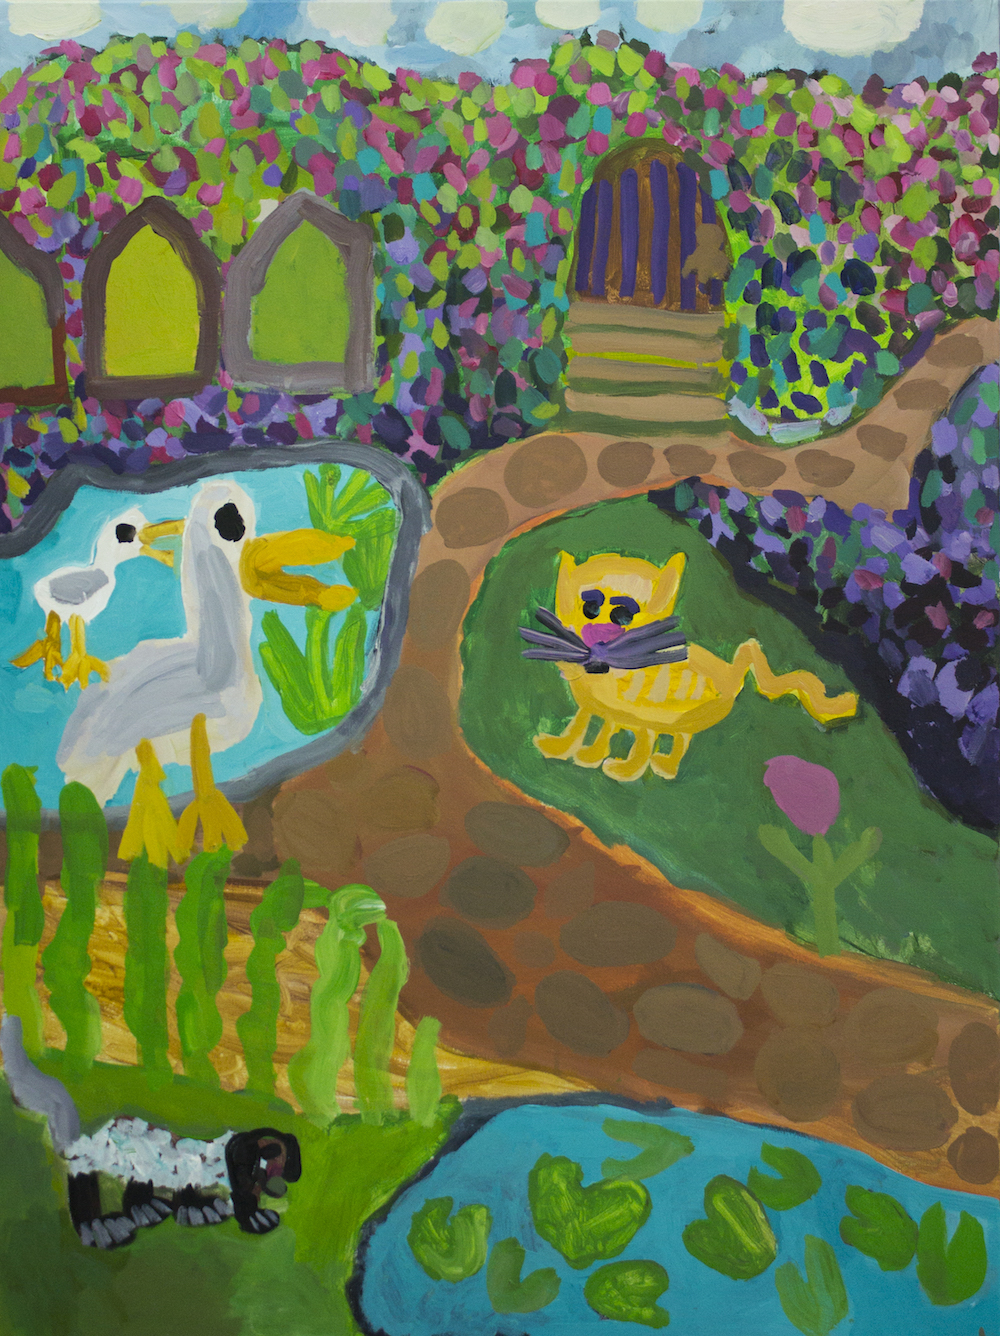 Nadia Lolas and Laura Jones, The Secret Garden (triptych), 2016, oil on canvas